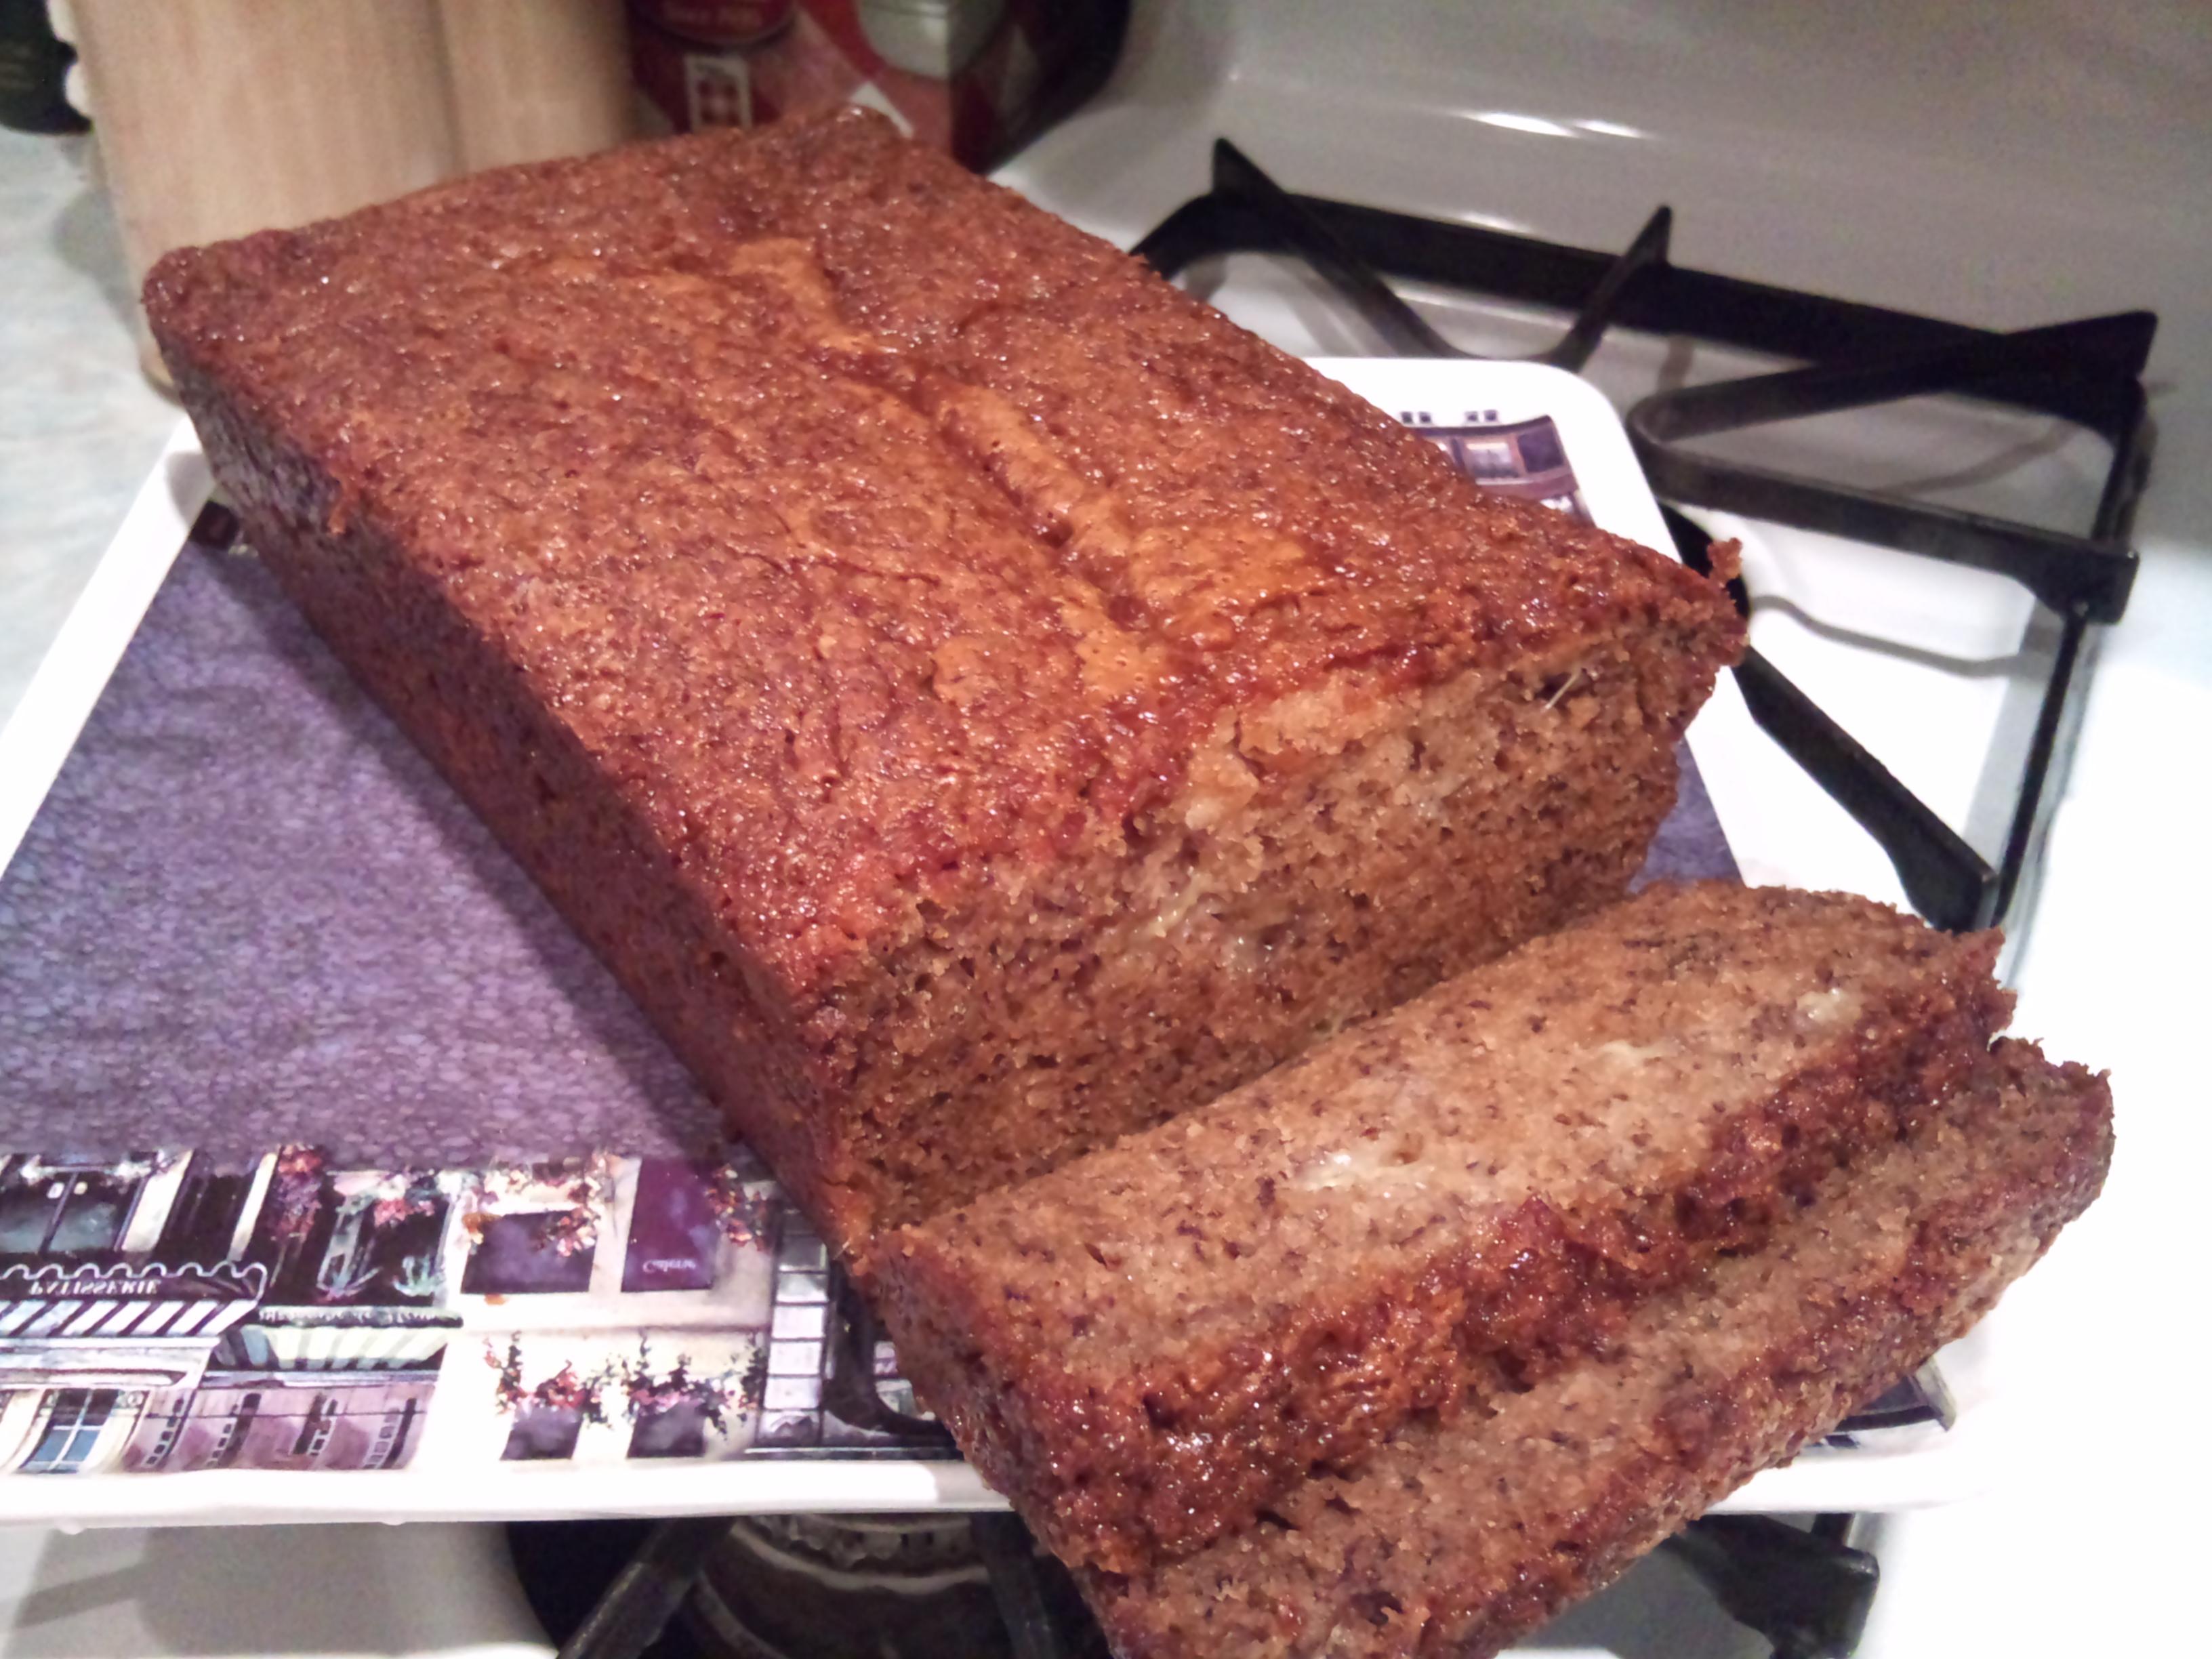 Cheerwine banana bread recipe random acts of coffee ingredients forumfinder Image collections